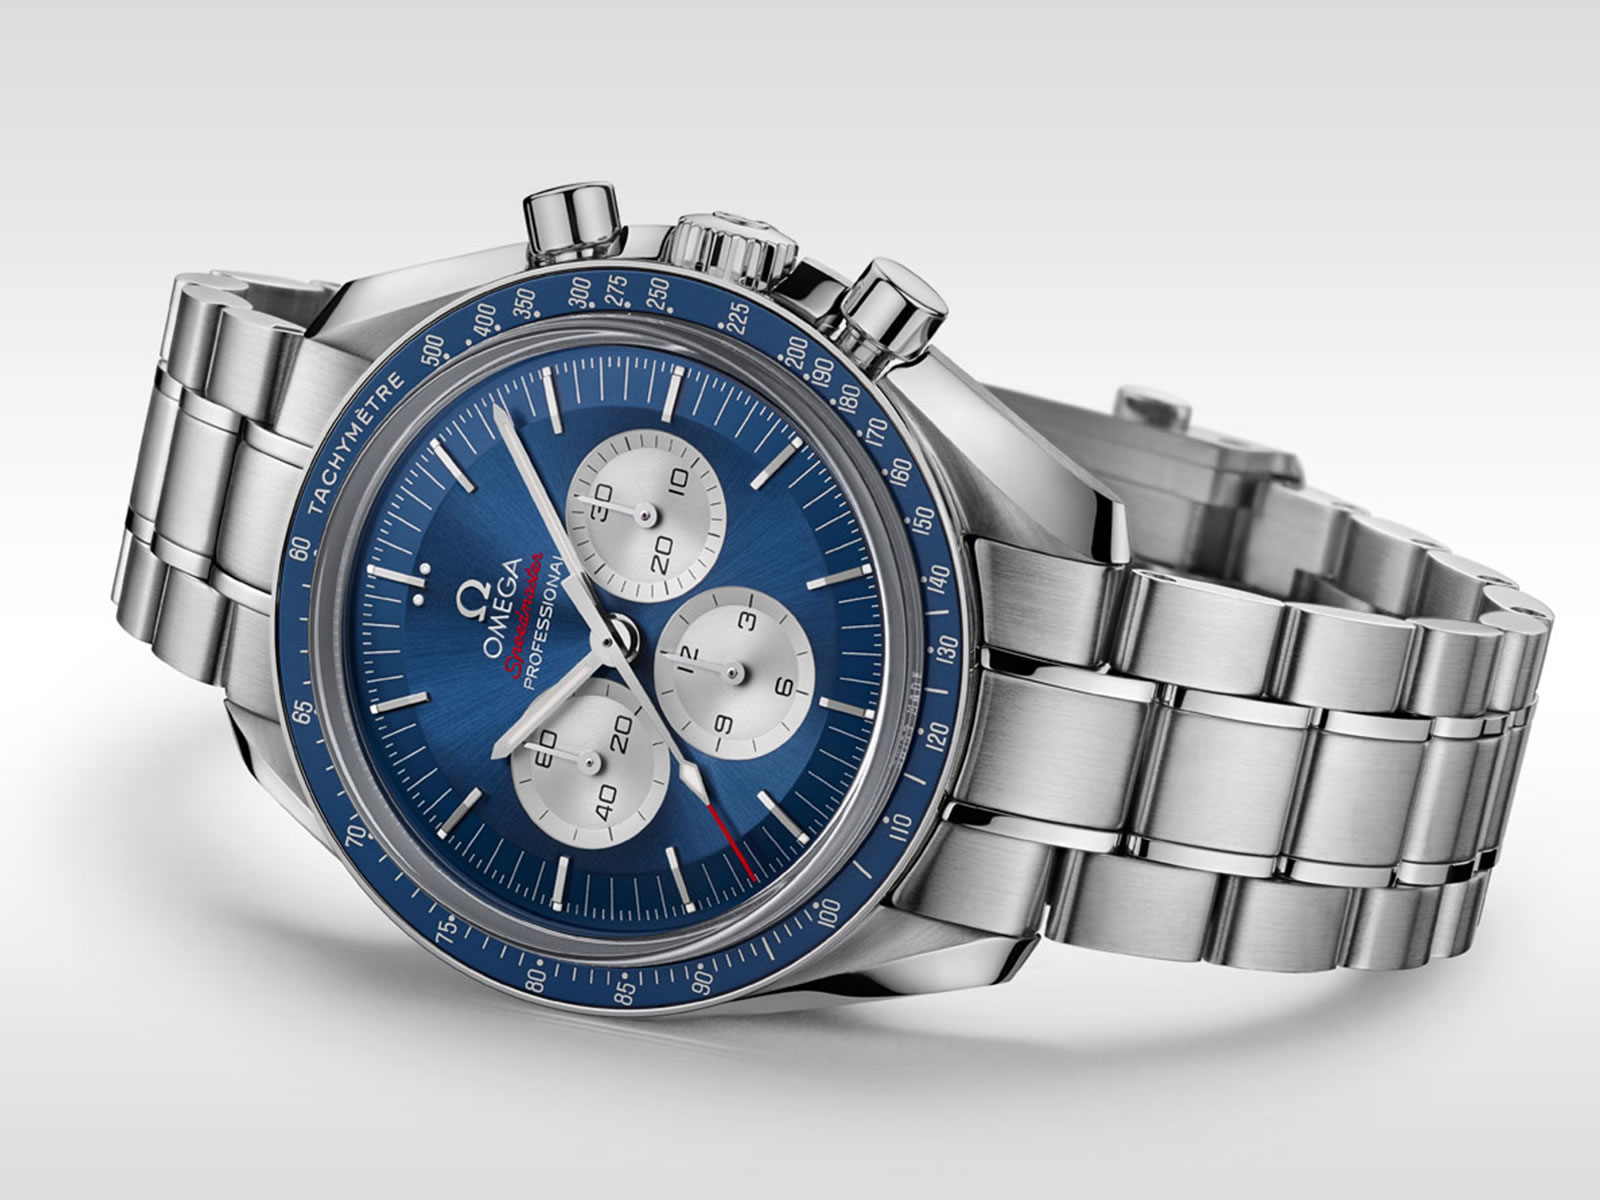 522-30-42-30-03-001-omega-olympic-games-2020-speedmaster-1-.jpg